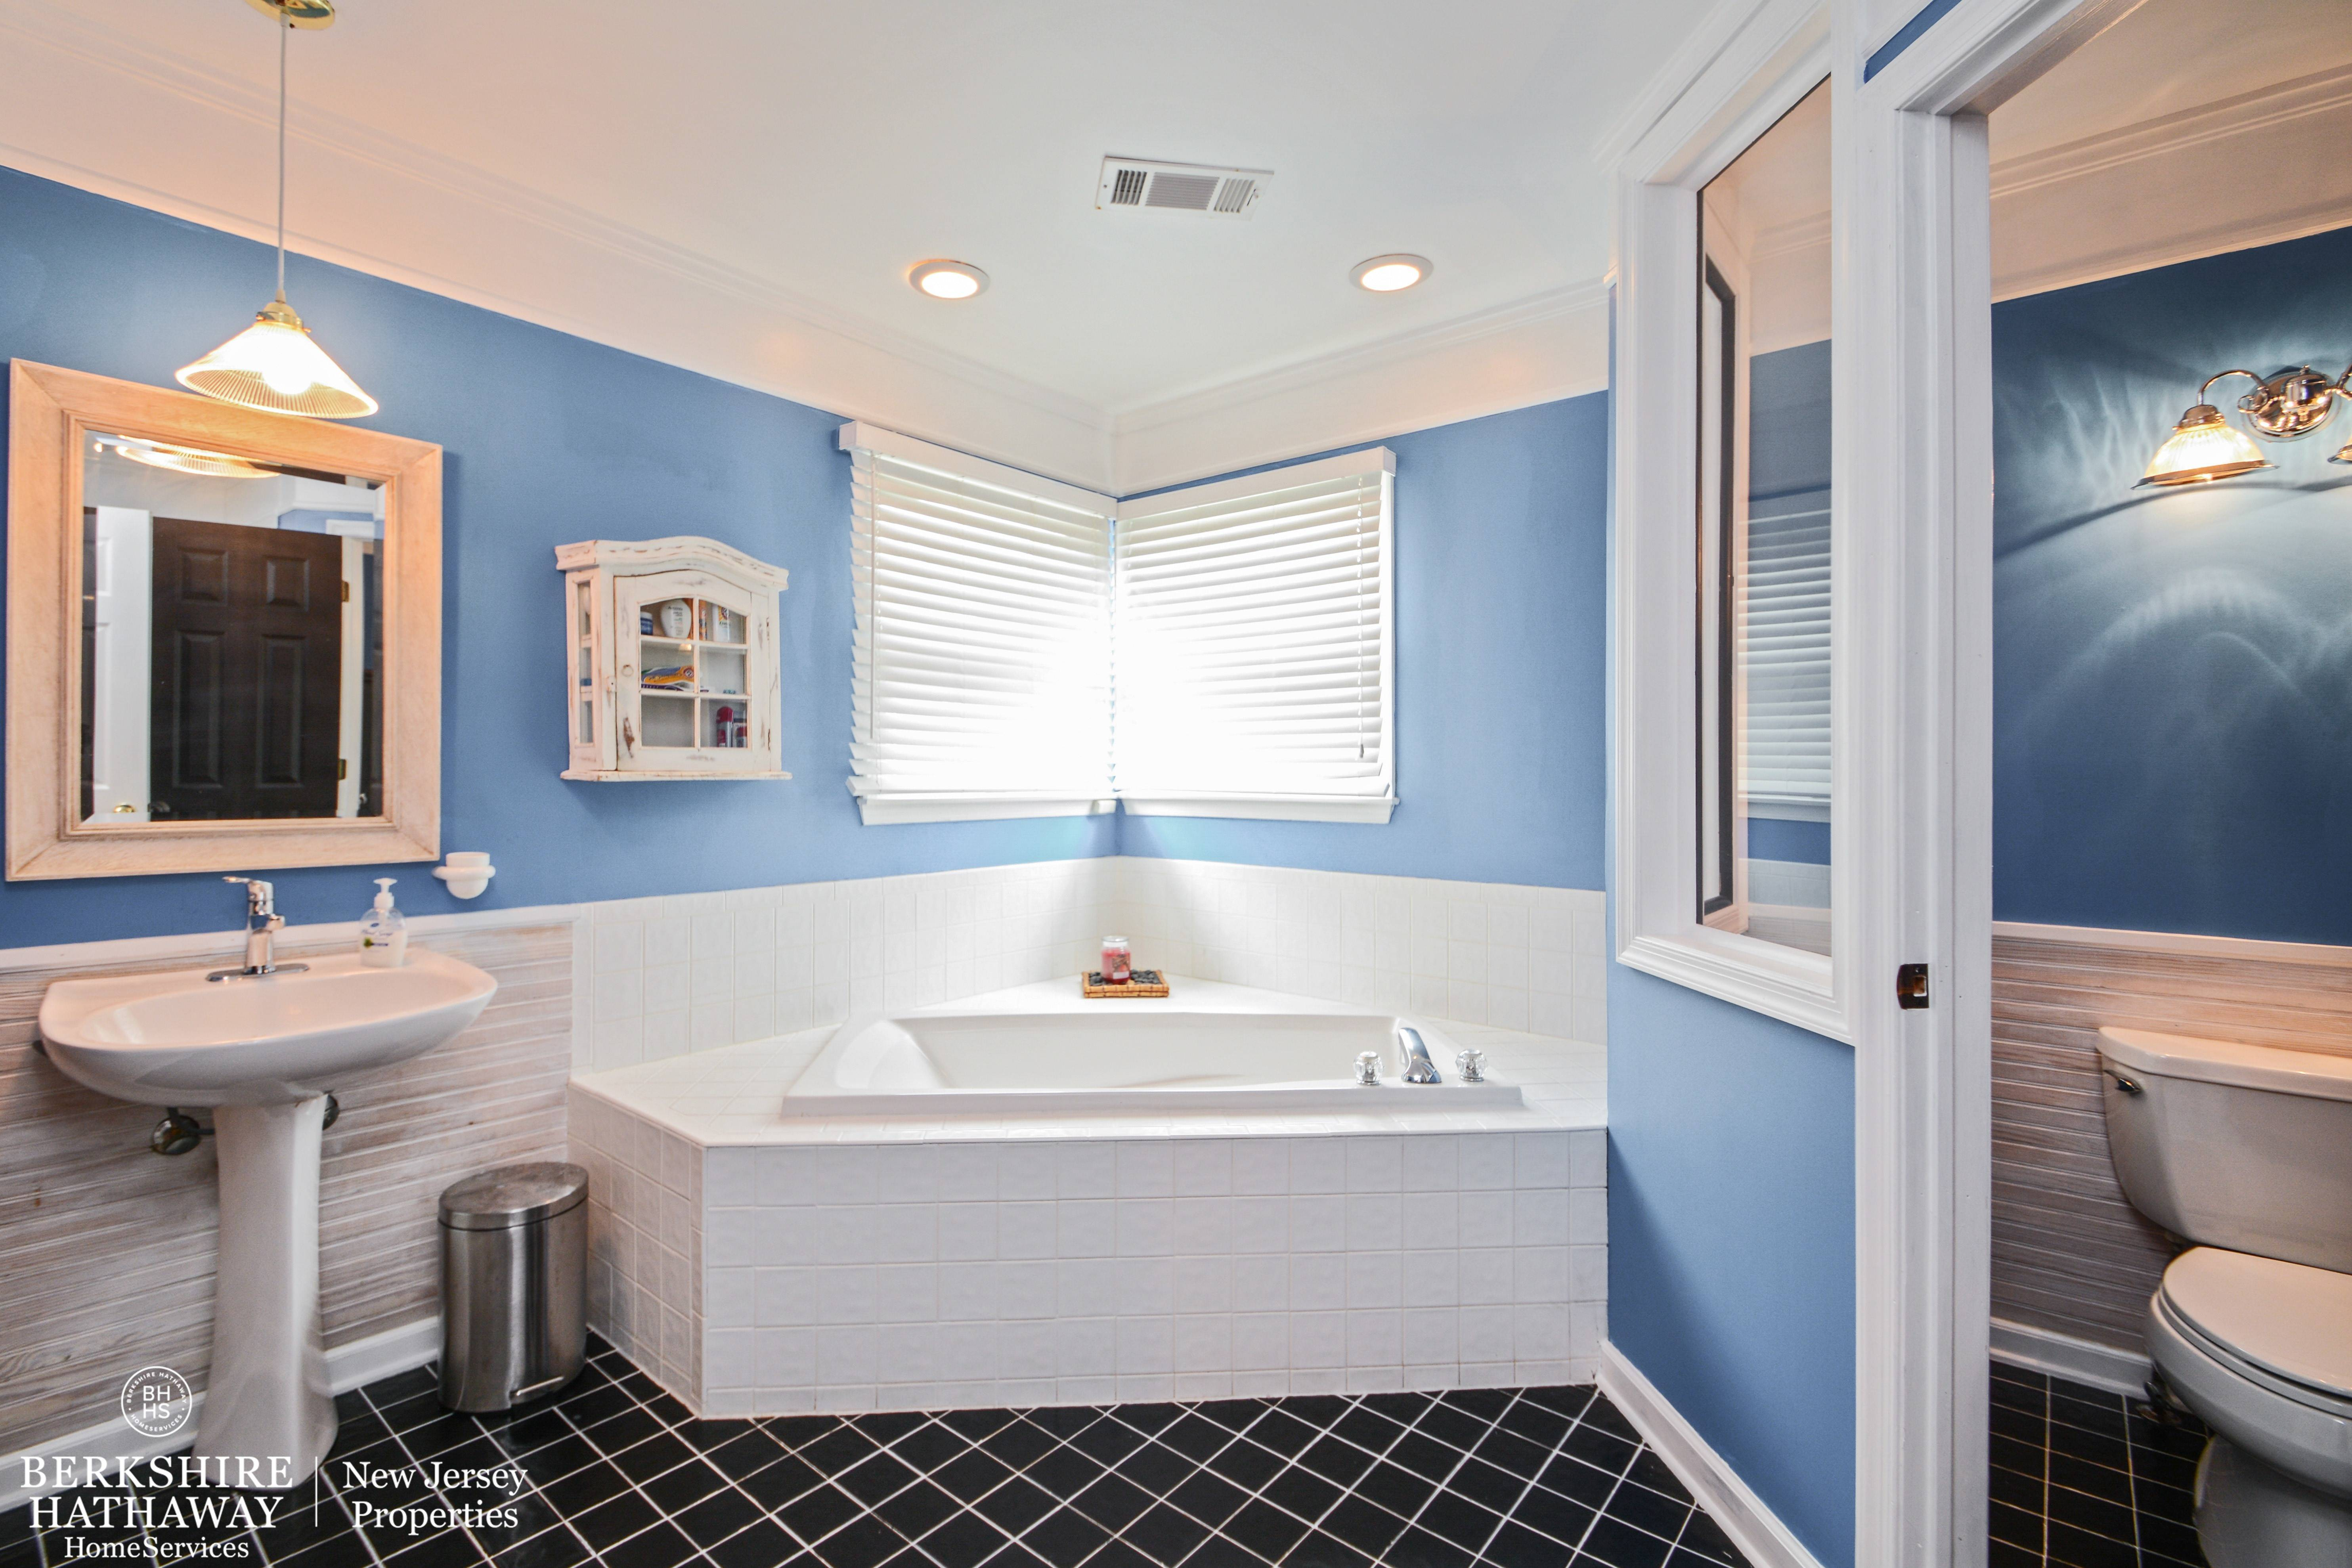 Murray hill farm 5 bedroom colonial tapinto for Best bathrooms on the road